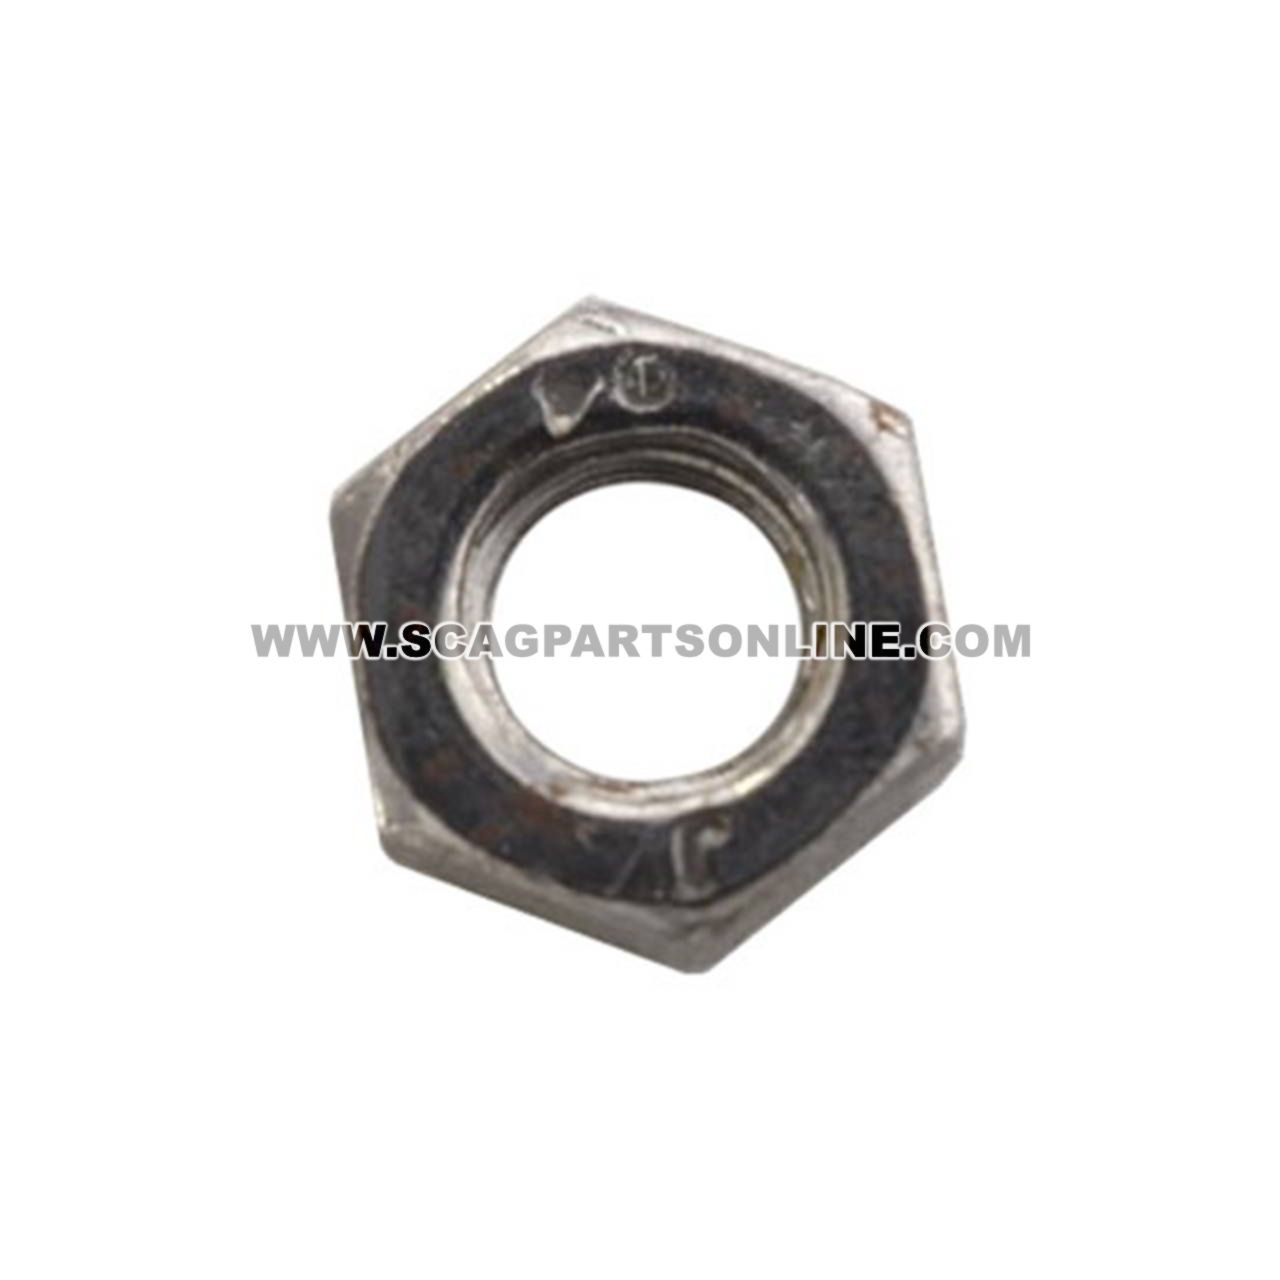 04025-03 Scag NUT, M5 X .8 METRIC HEX